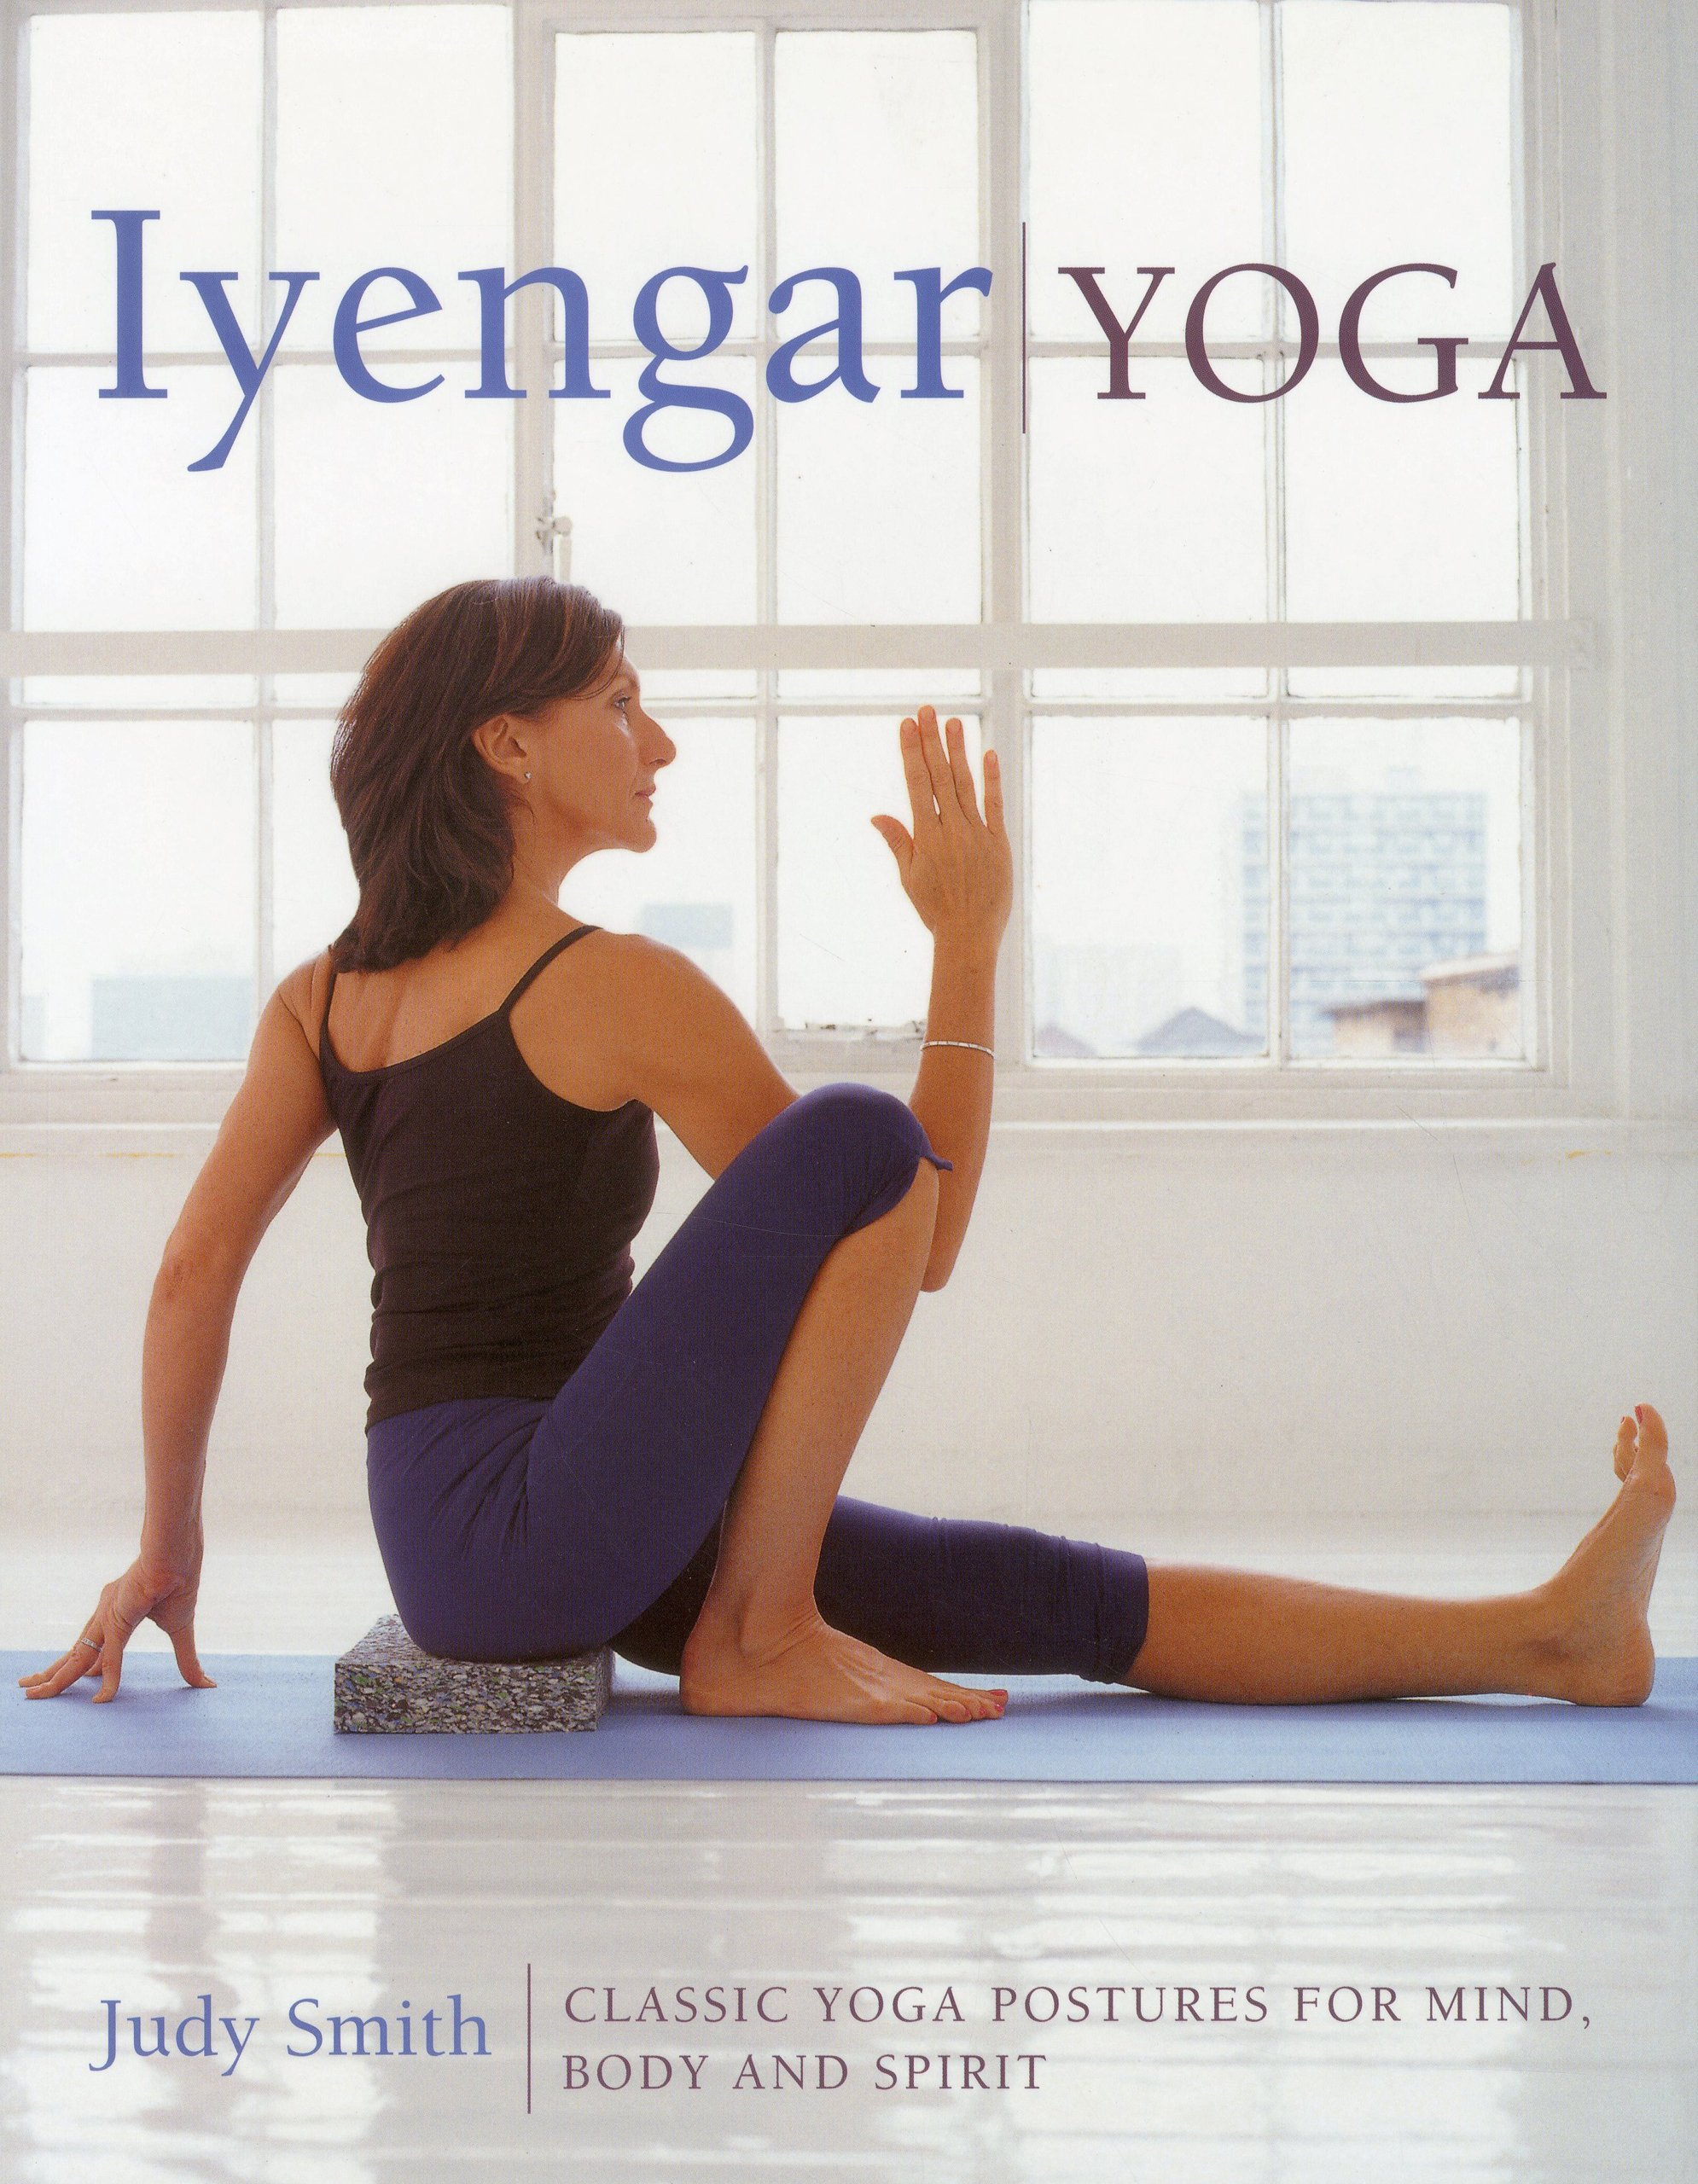 Iyengar Yoga Classic Yoga Postures For Mind Body And Spirit Smith Judy 9781780191195 Amazon Com Books